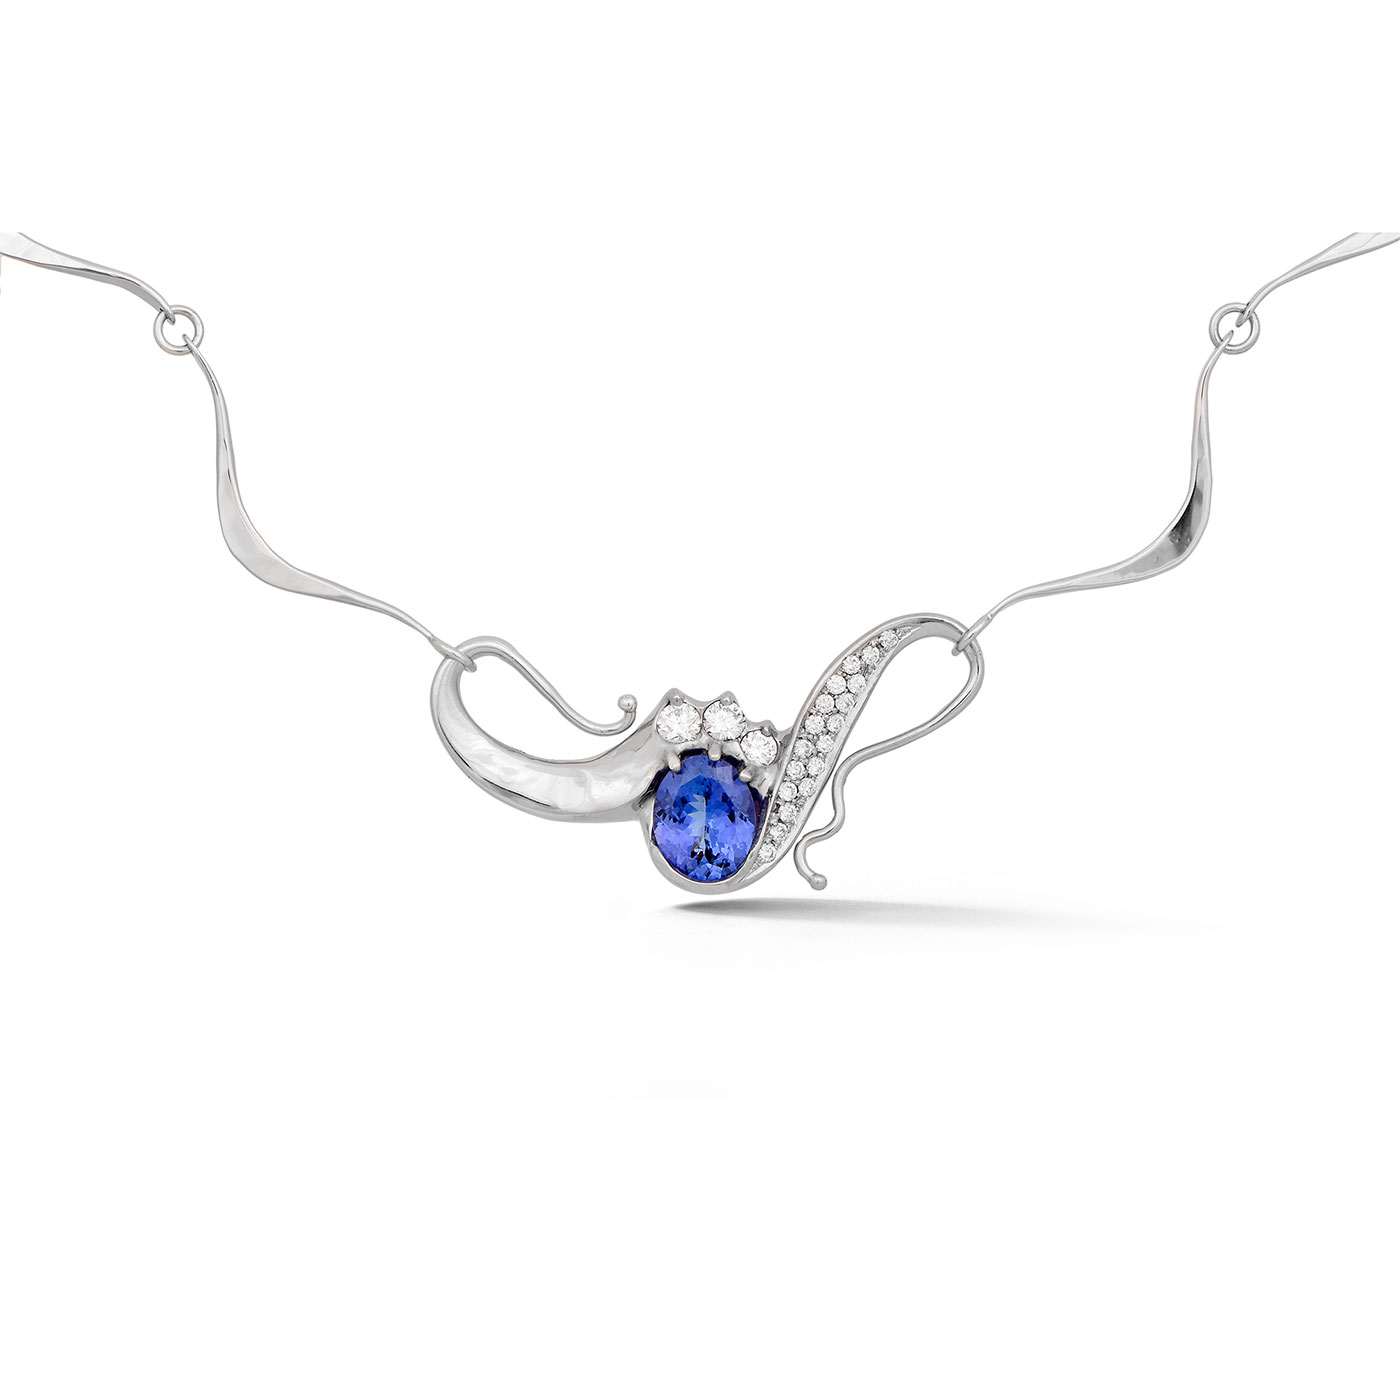 C7451 Oval Tanzanite Asymmetrical Pendant